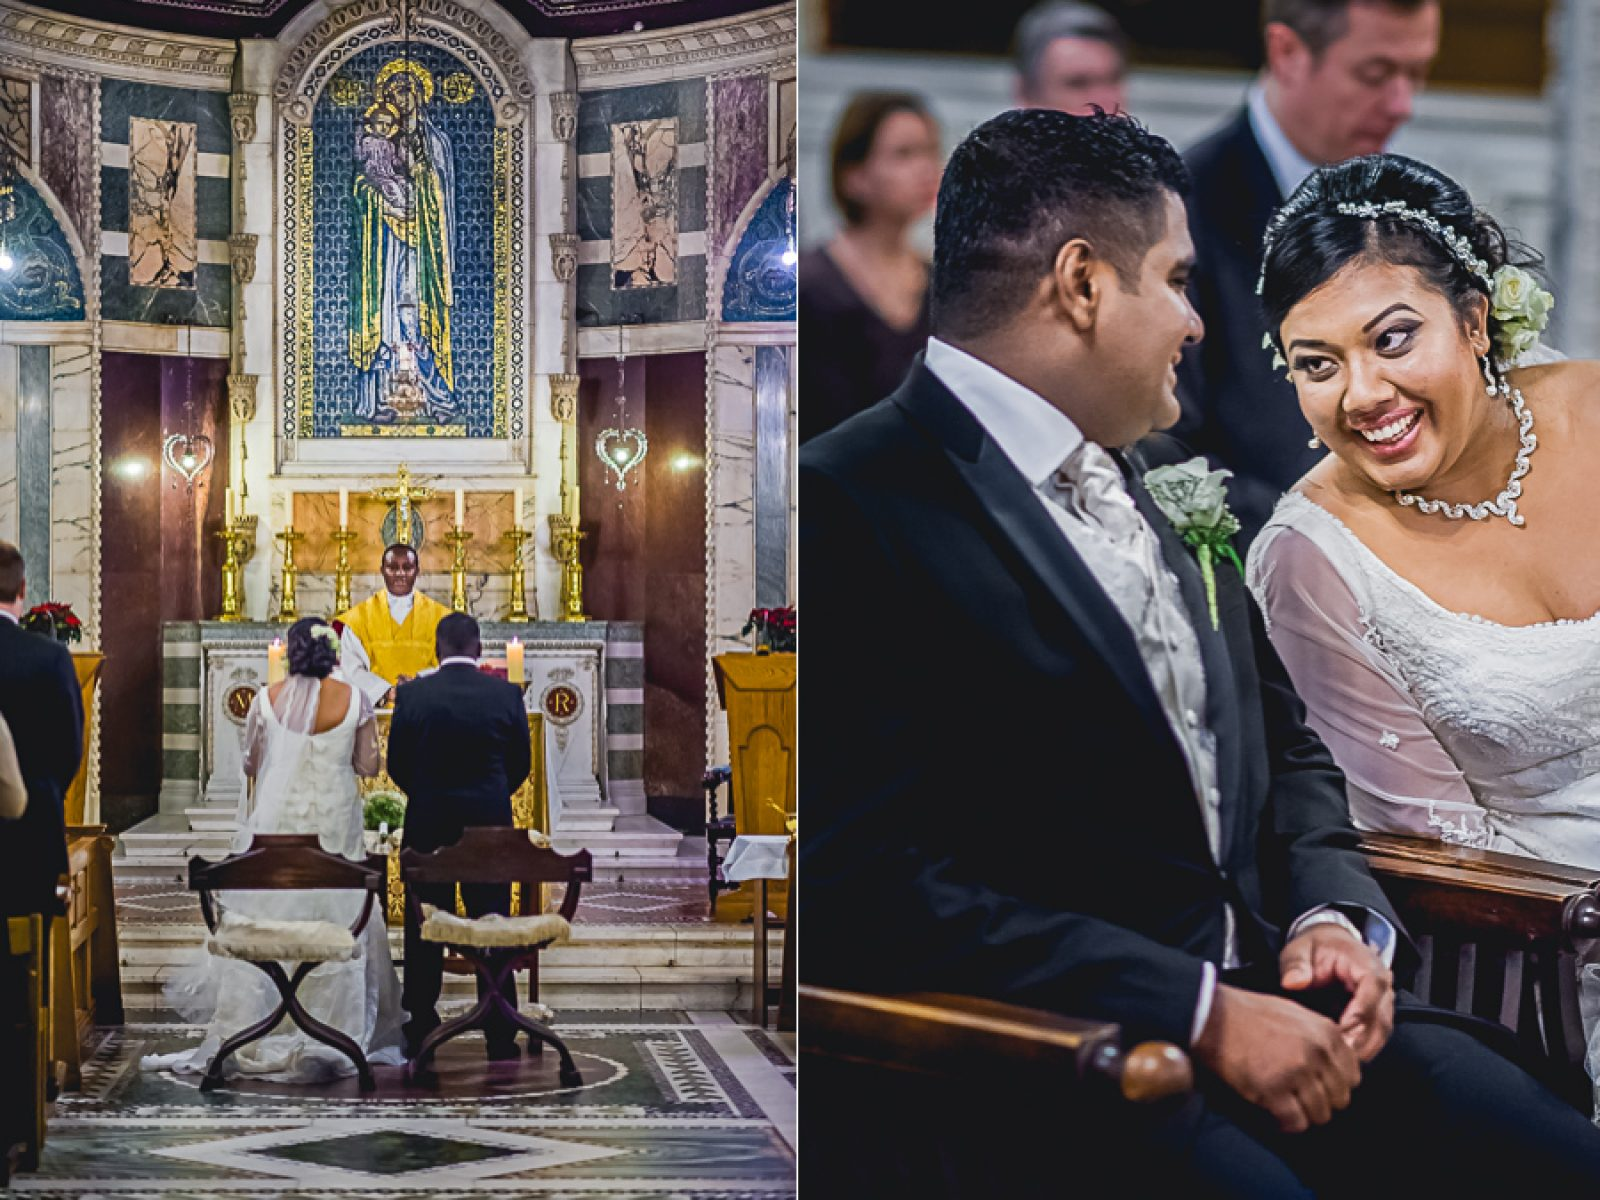 601 1600x1200 - Darshani and Anthony - wedding photographer in London